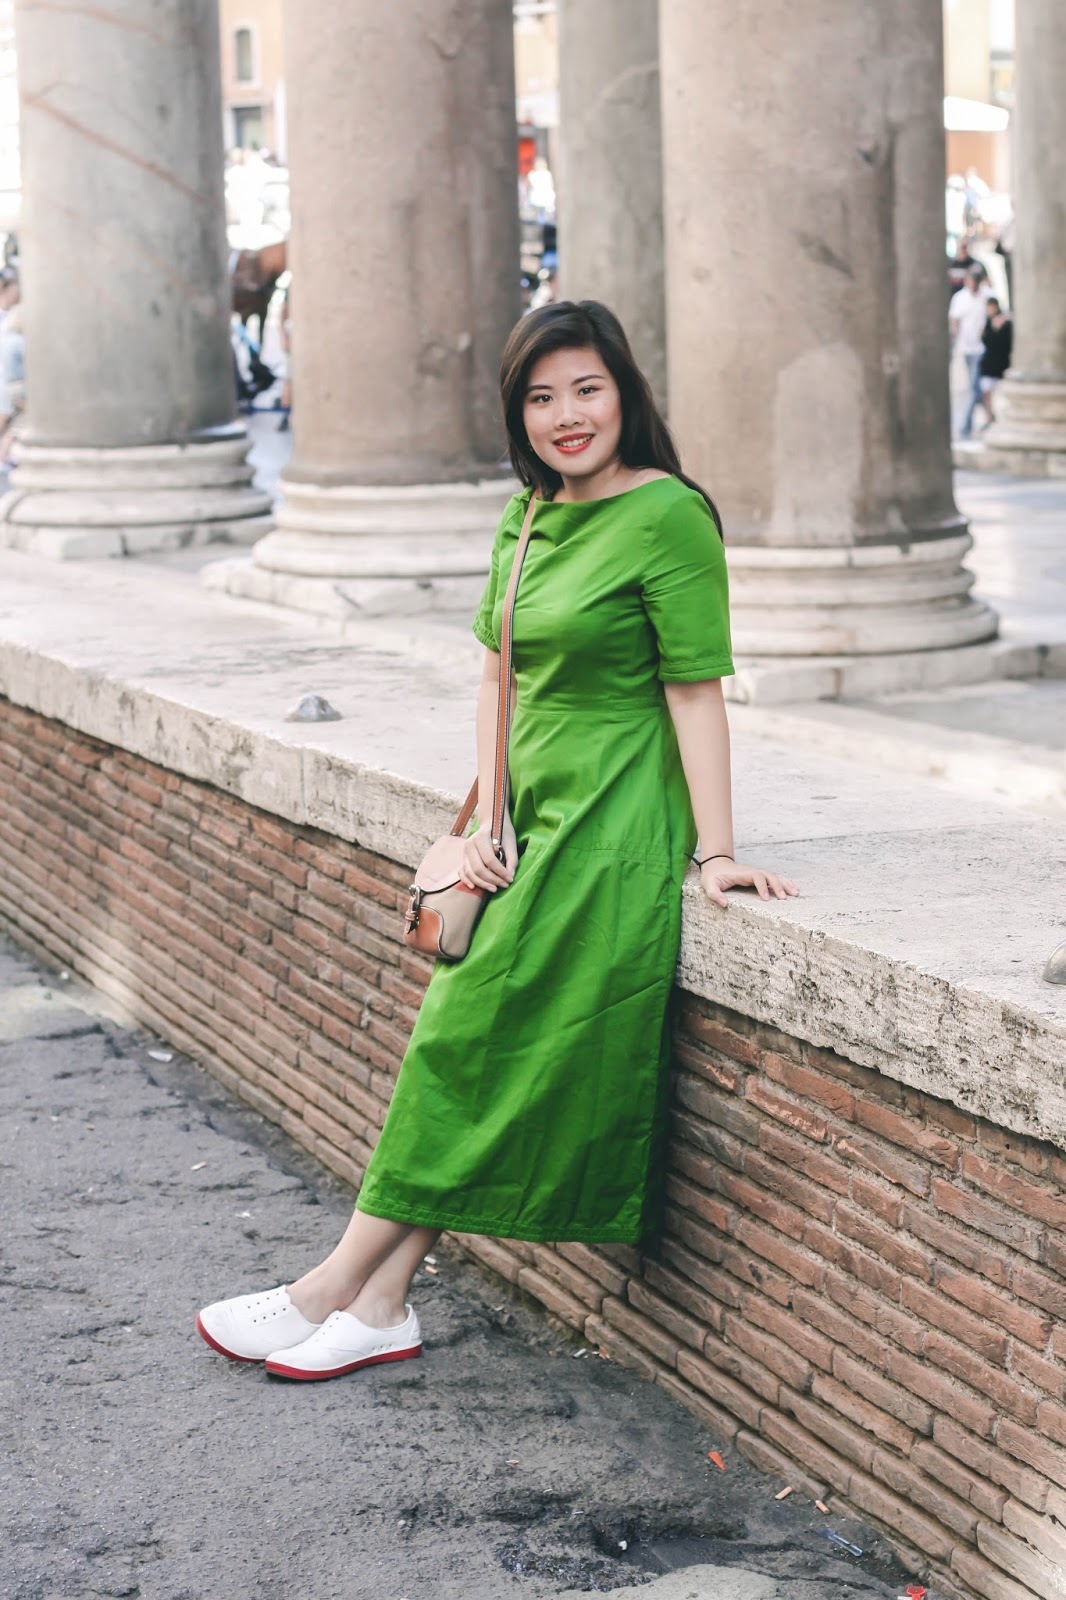 singapore blogger look book street style photographer cos italy summer holiday europe outfit fashion burberry